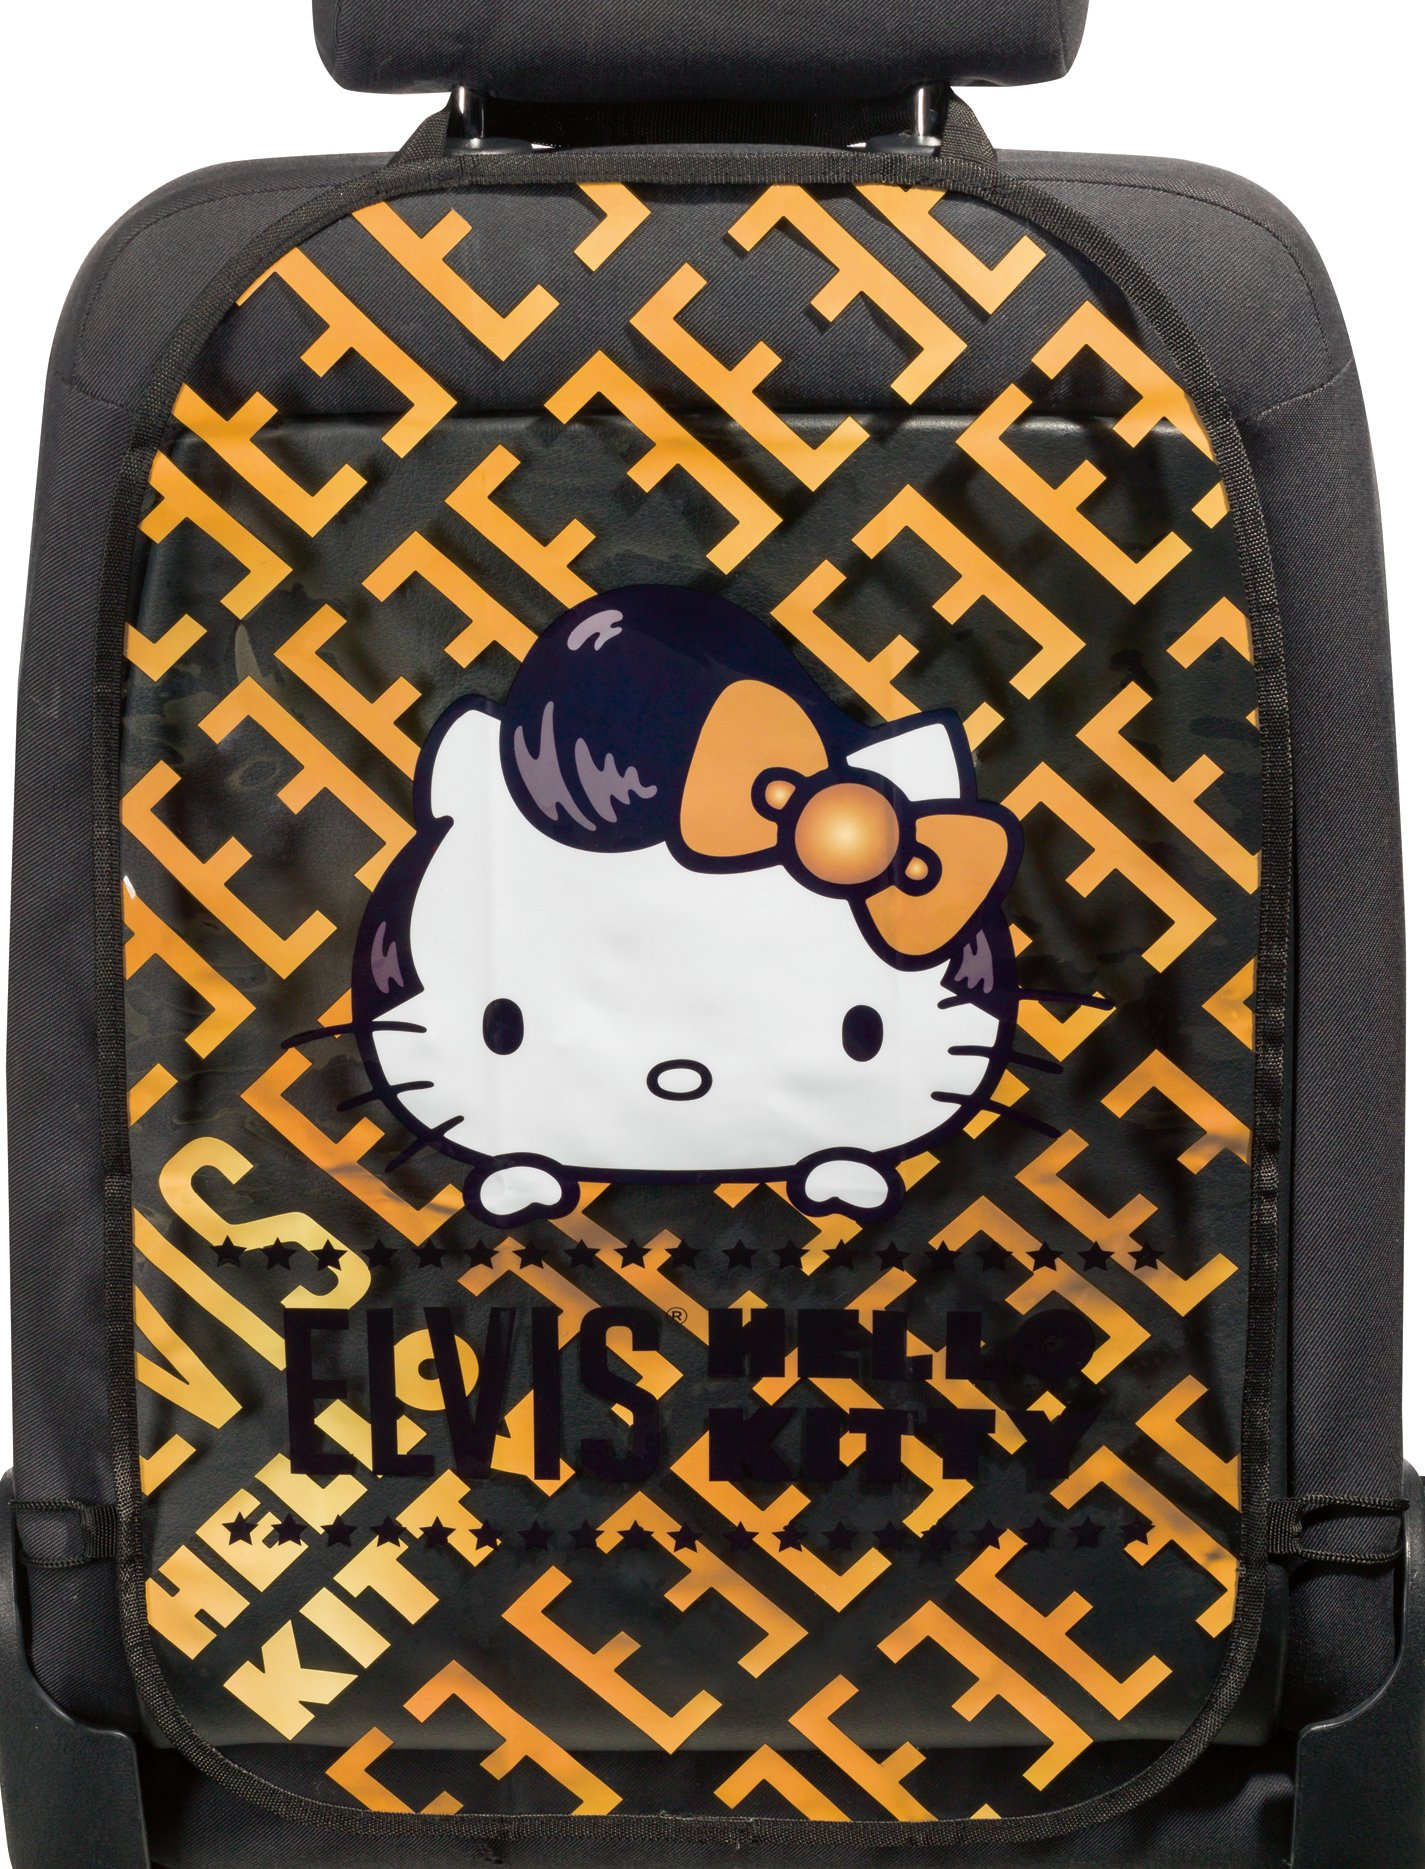 Walser 25019 Elvis Hello Kitty Seat Back Protector, Black